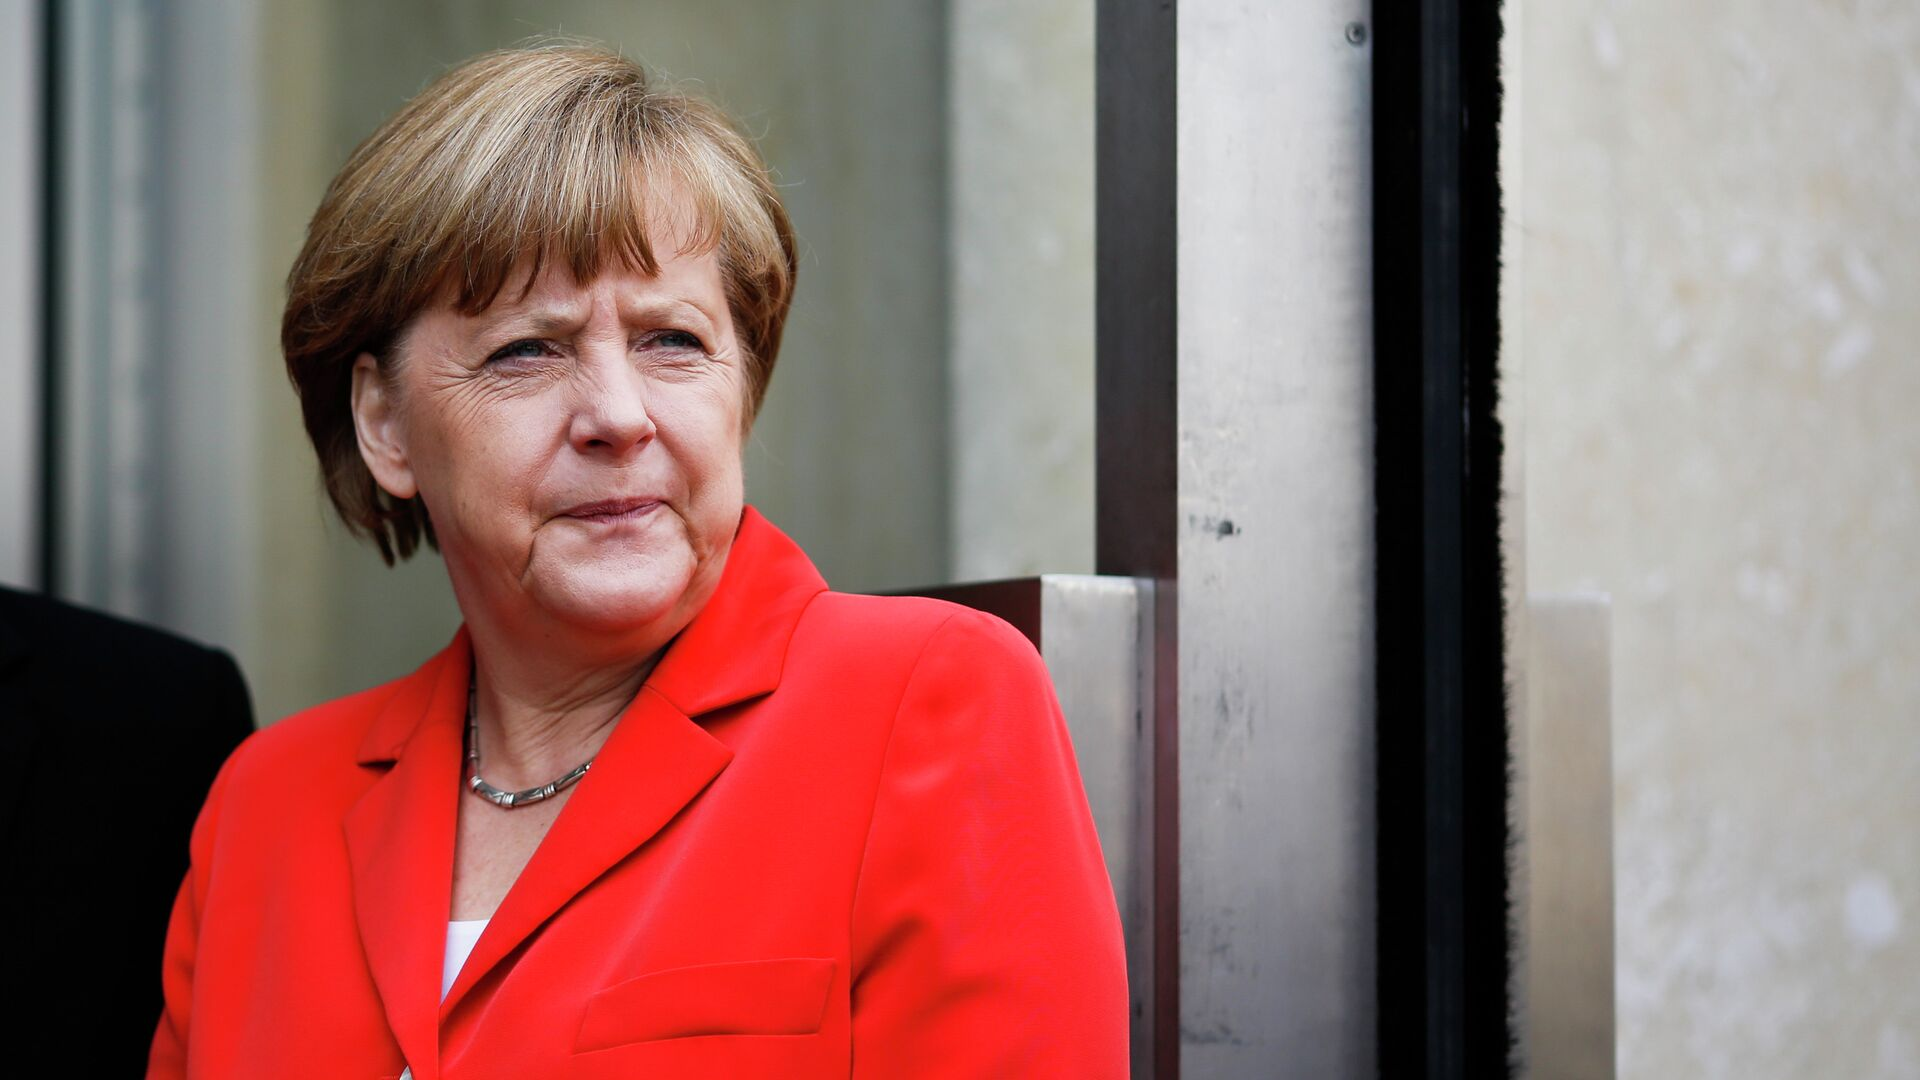 German Chancellor Angela Merkel waits for French President Francois Hollande prior to the conference 'Petersberg Climate Dialogue' in Berlin, Germany, Tuesday, May 19, 2015 - Sputnik Mundo, 1920, 13.08.2021